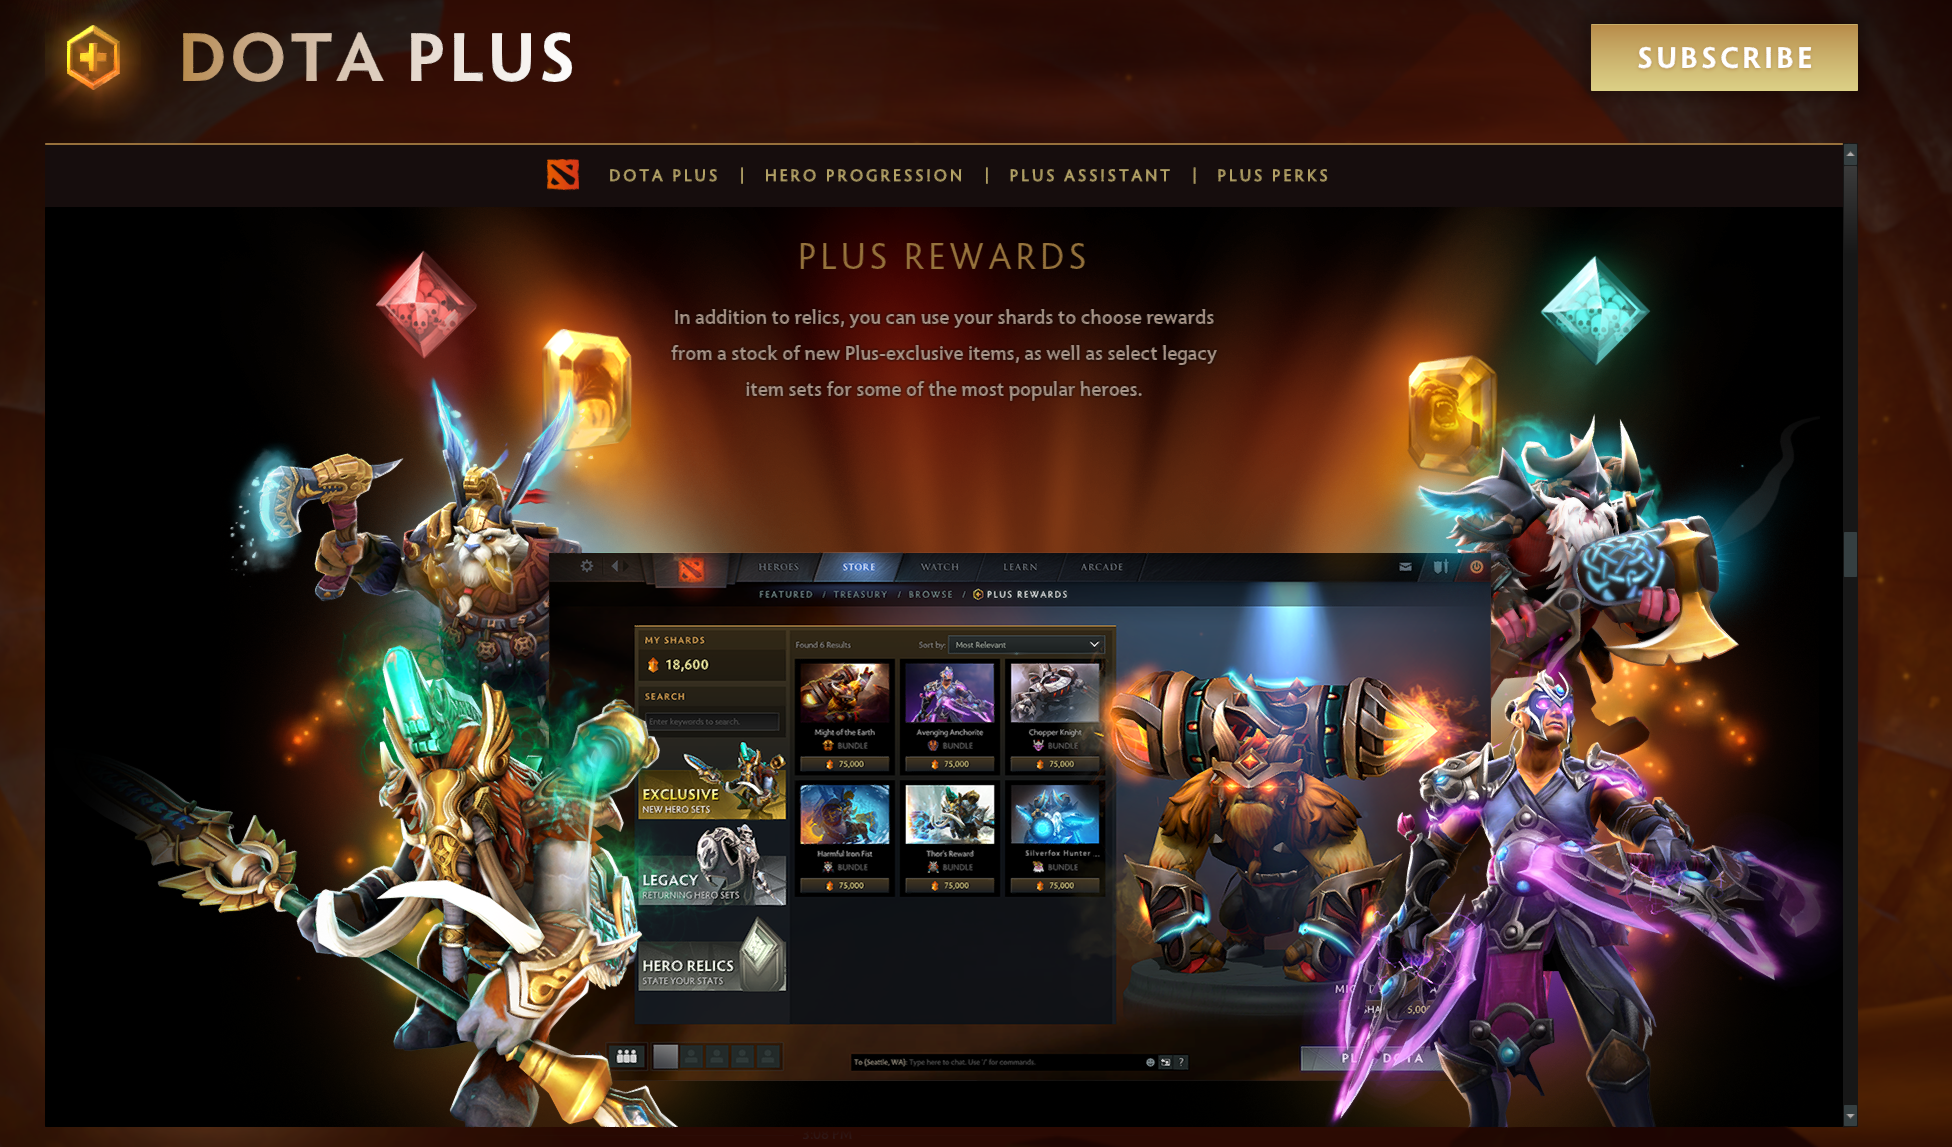 Valve Announces Dota Plus An Optional Subscription Service With Exclusive Perks